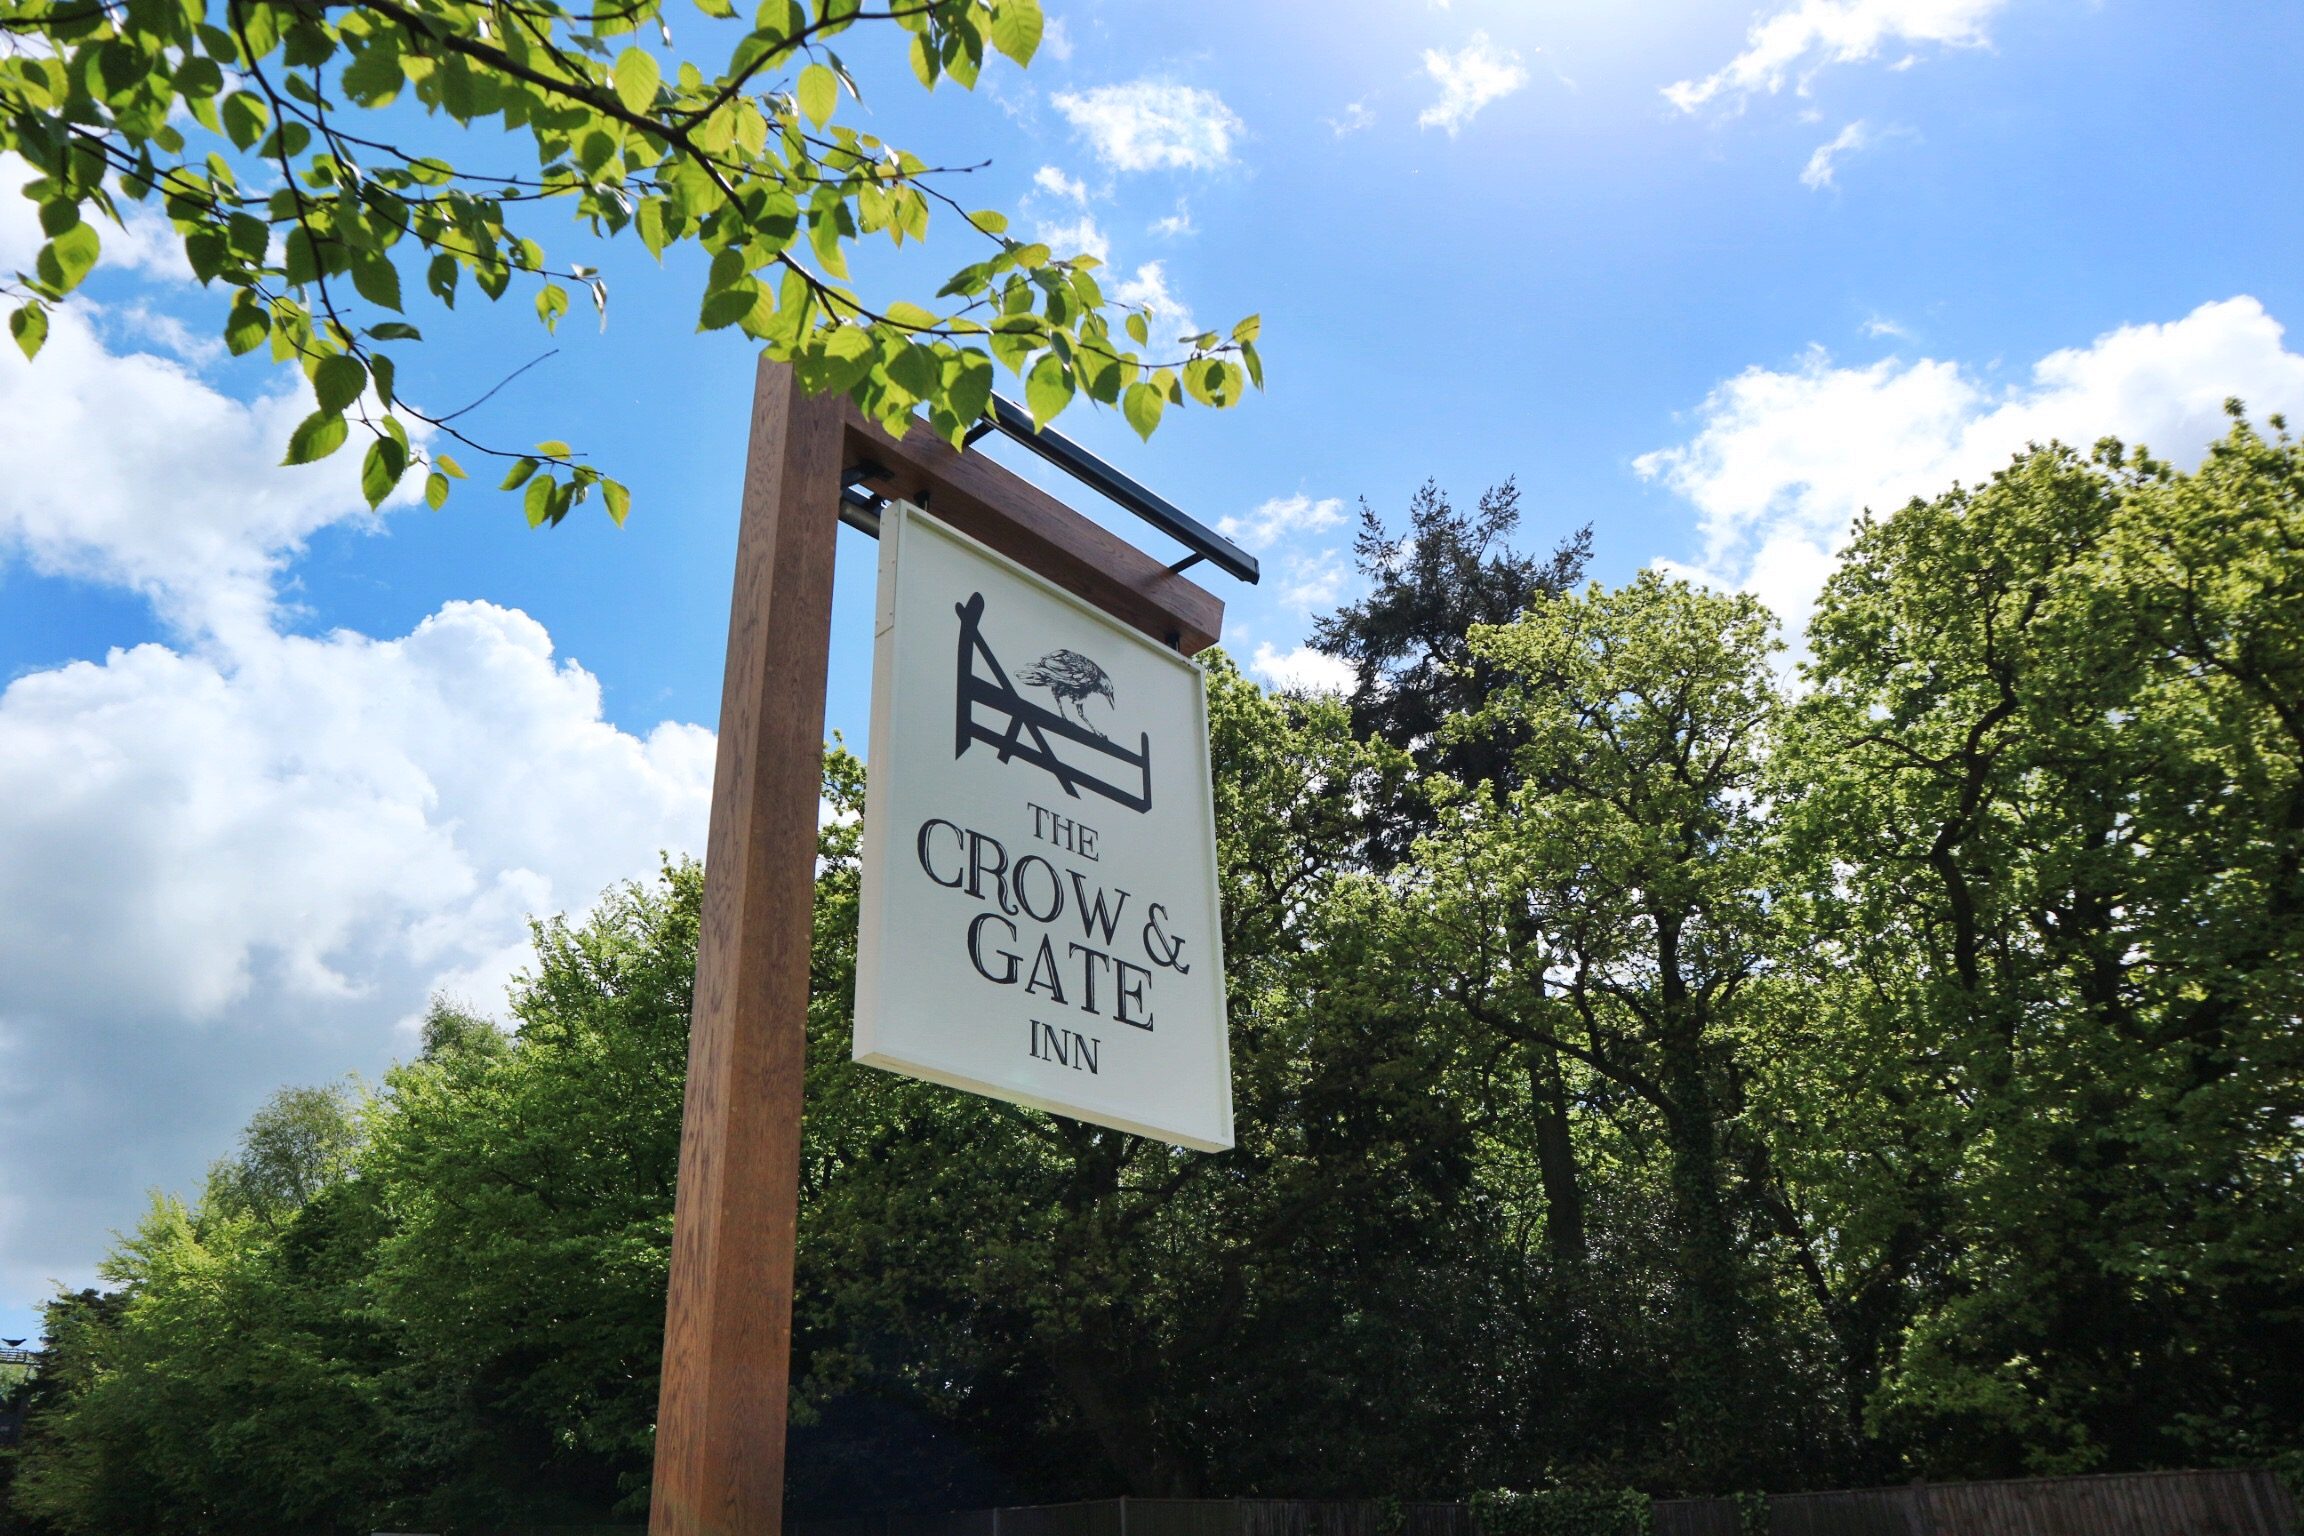 The Crow And Gate | Crowborough | Review